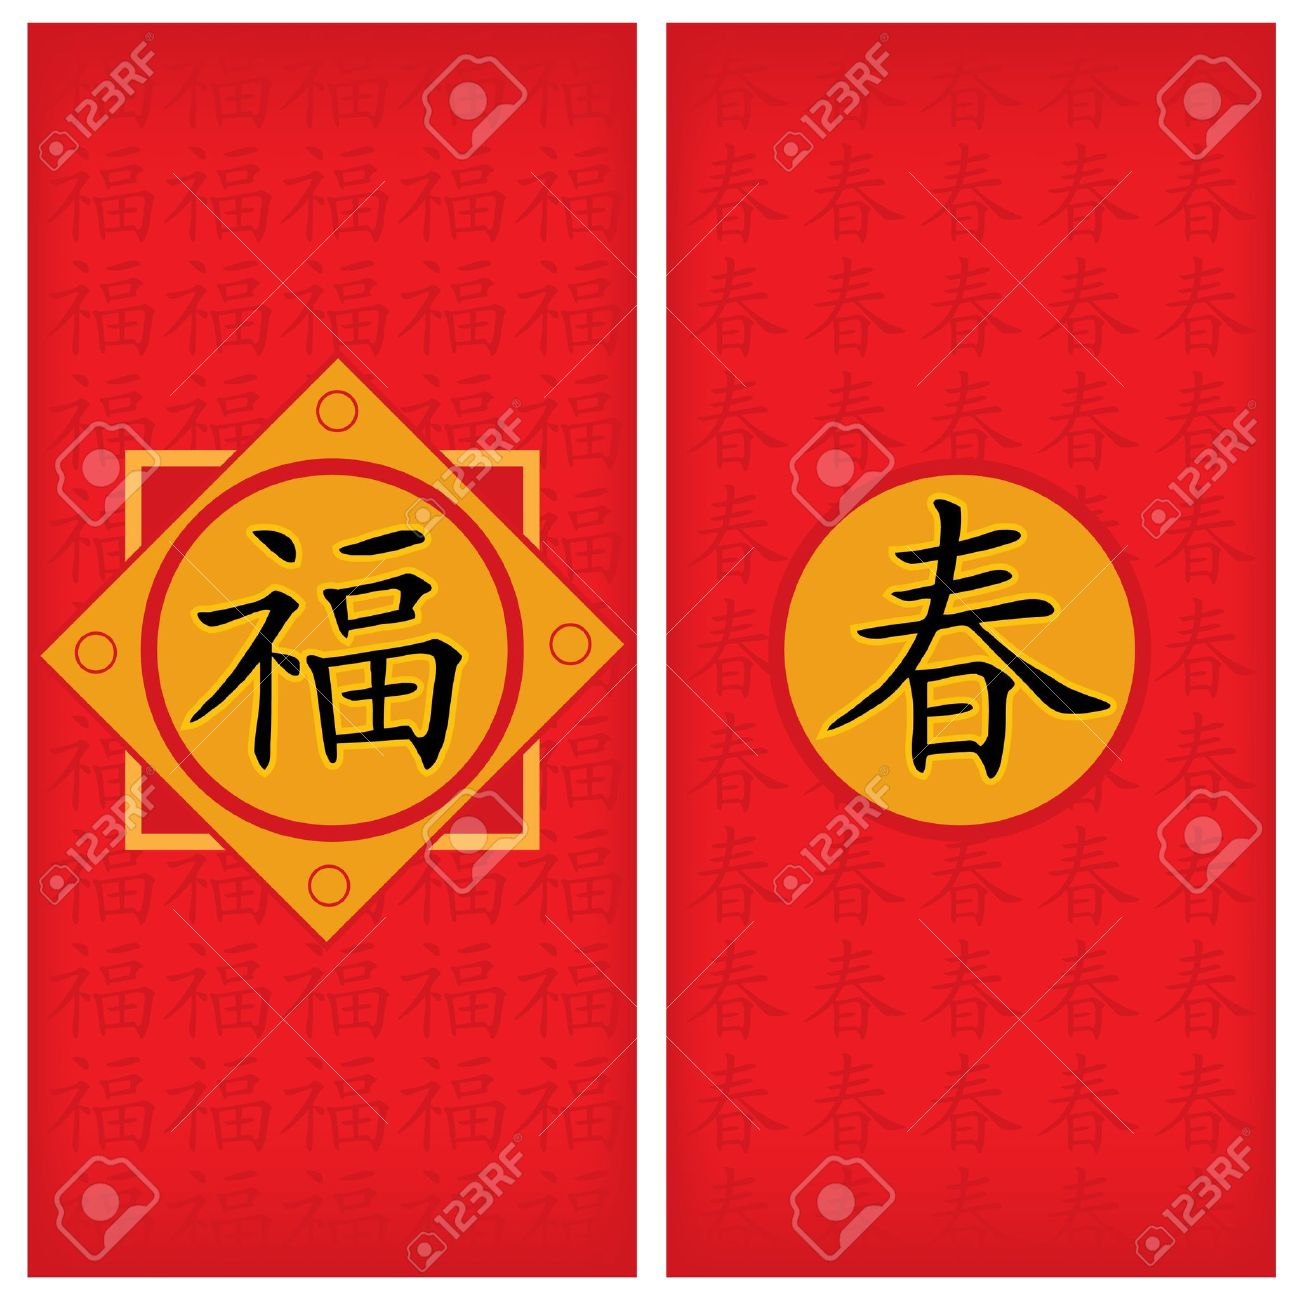 Chinese red packet design.